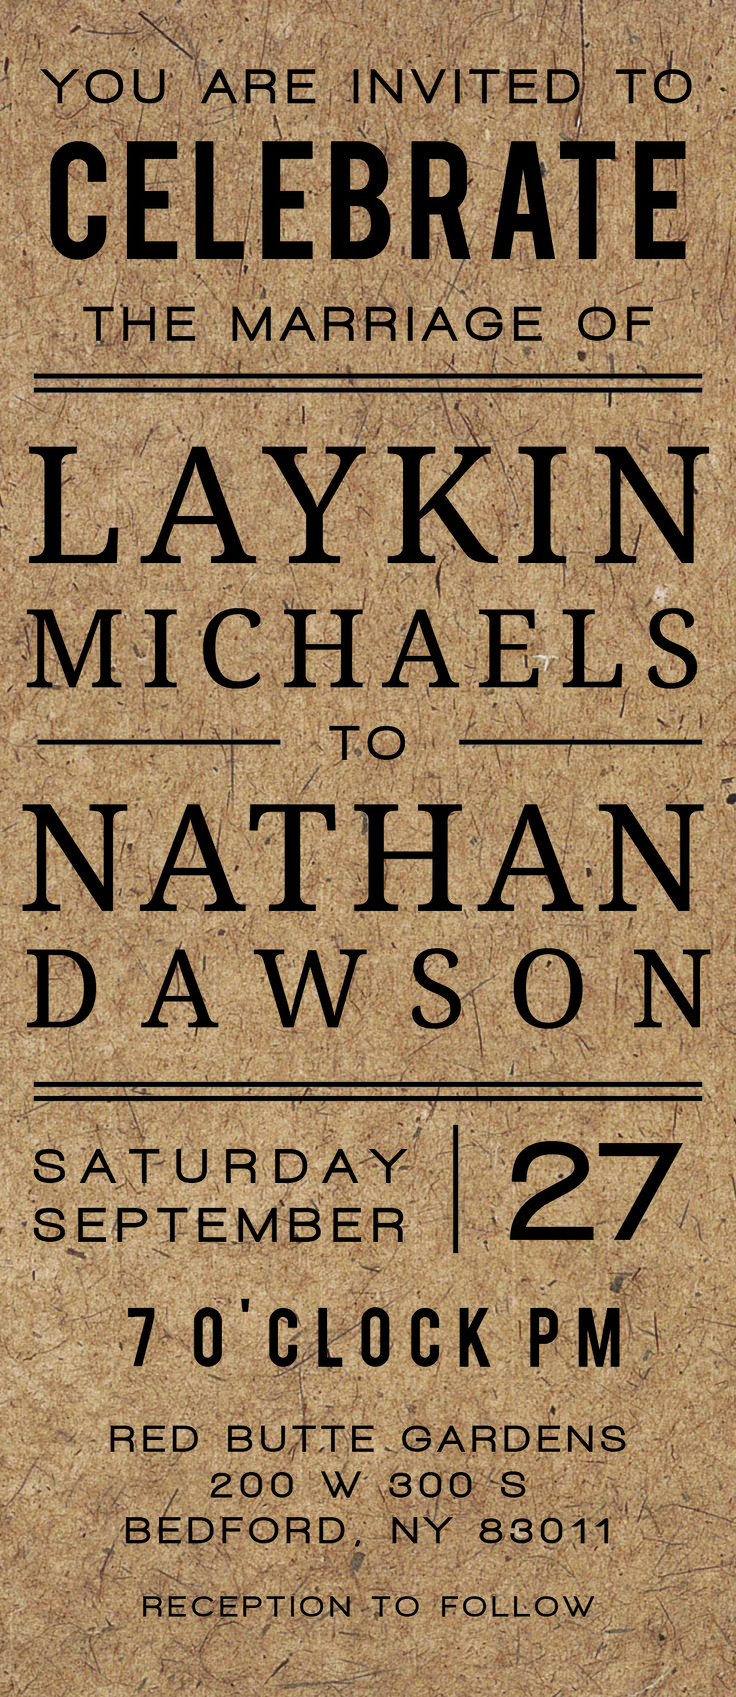 Michaels crafts wedding invitations - The Classic Craft Wedding Invitations Offers A Rustic Feel With Modern Style